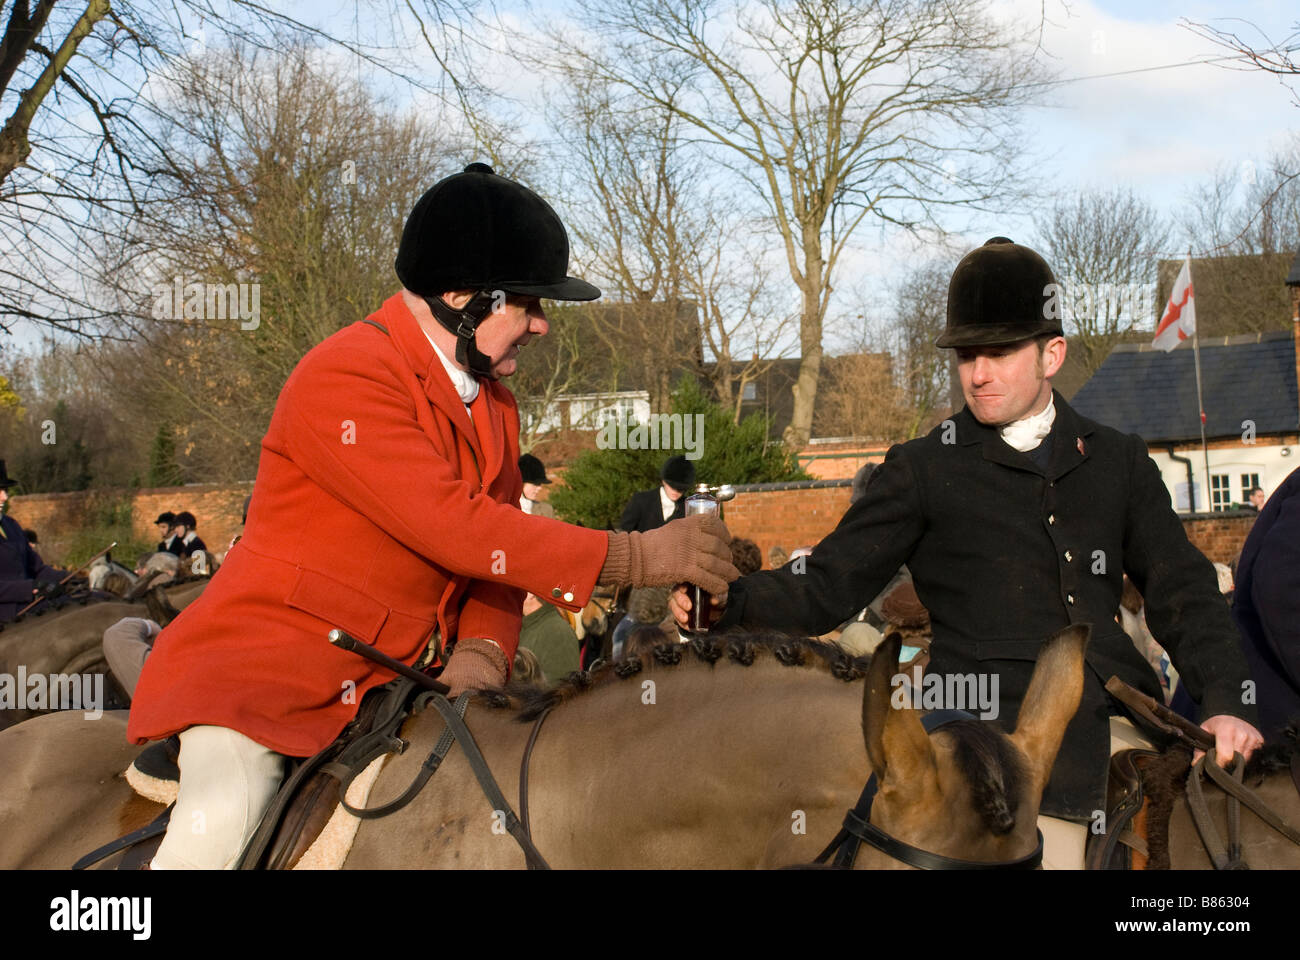 Horses of the Fernie Hunt at the traditional meet on Boxing Day Great Bowden Leicestershire - Stock Image